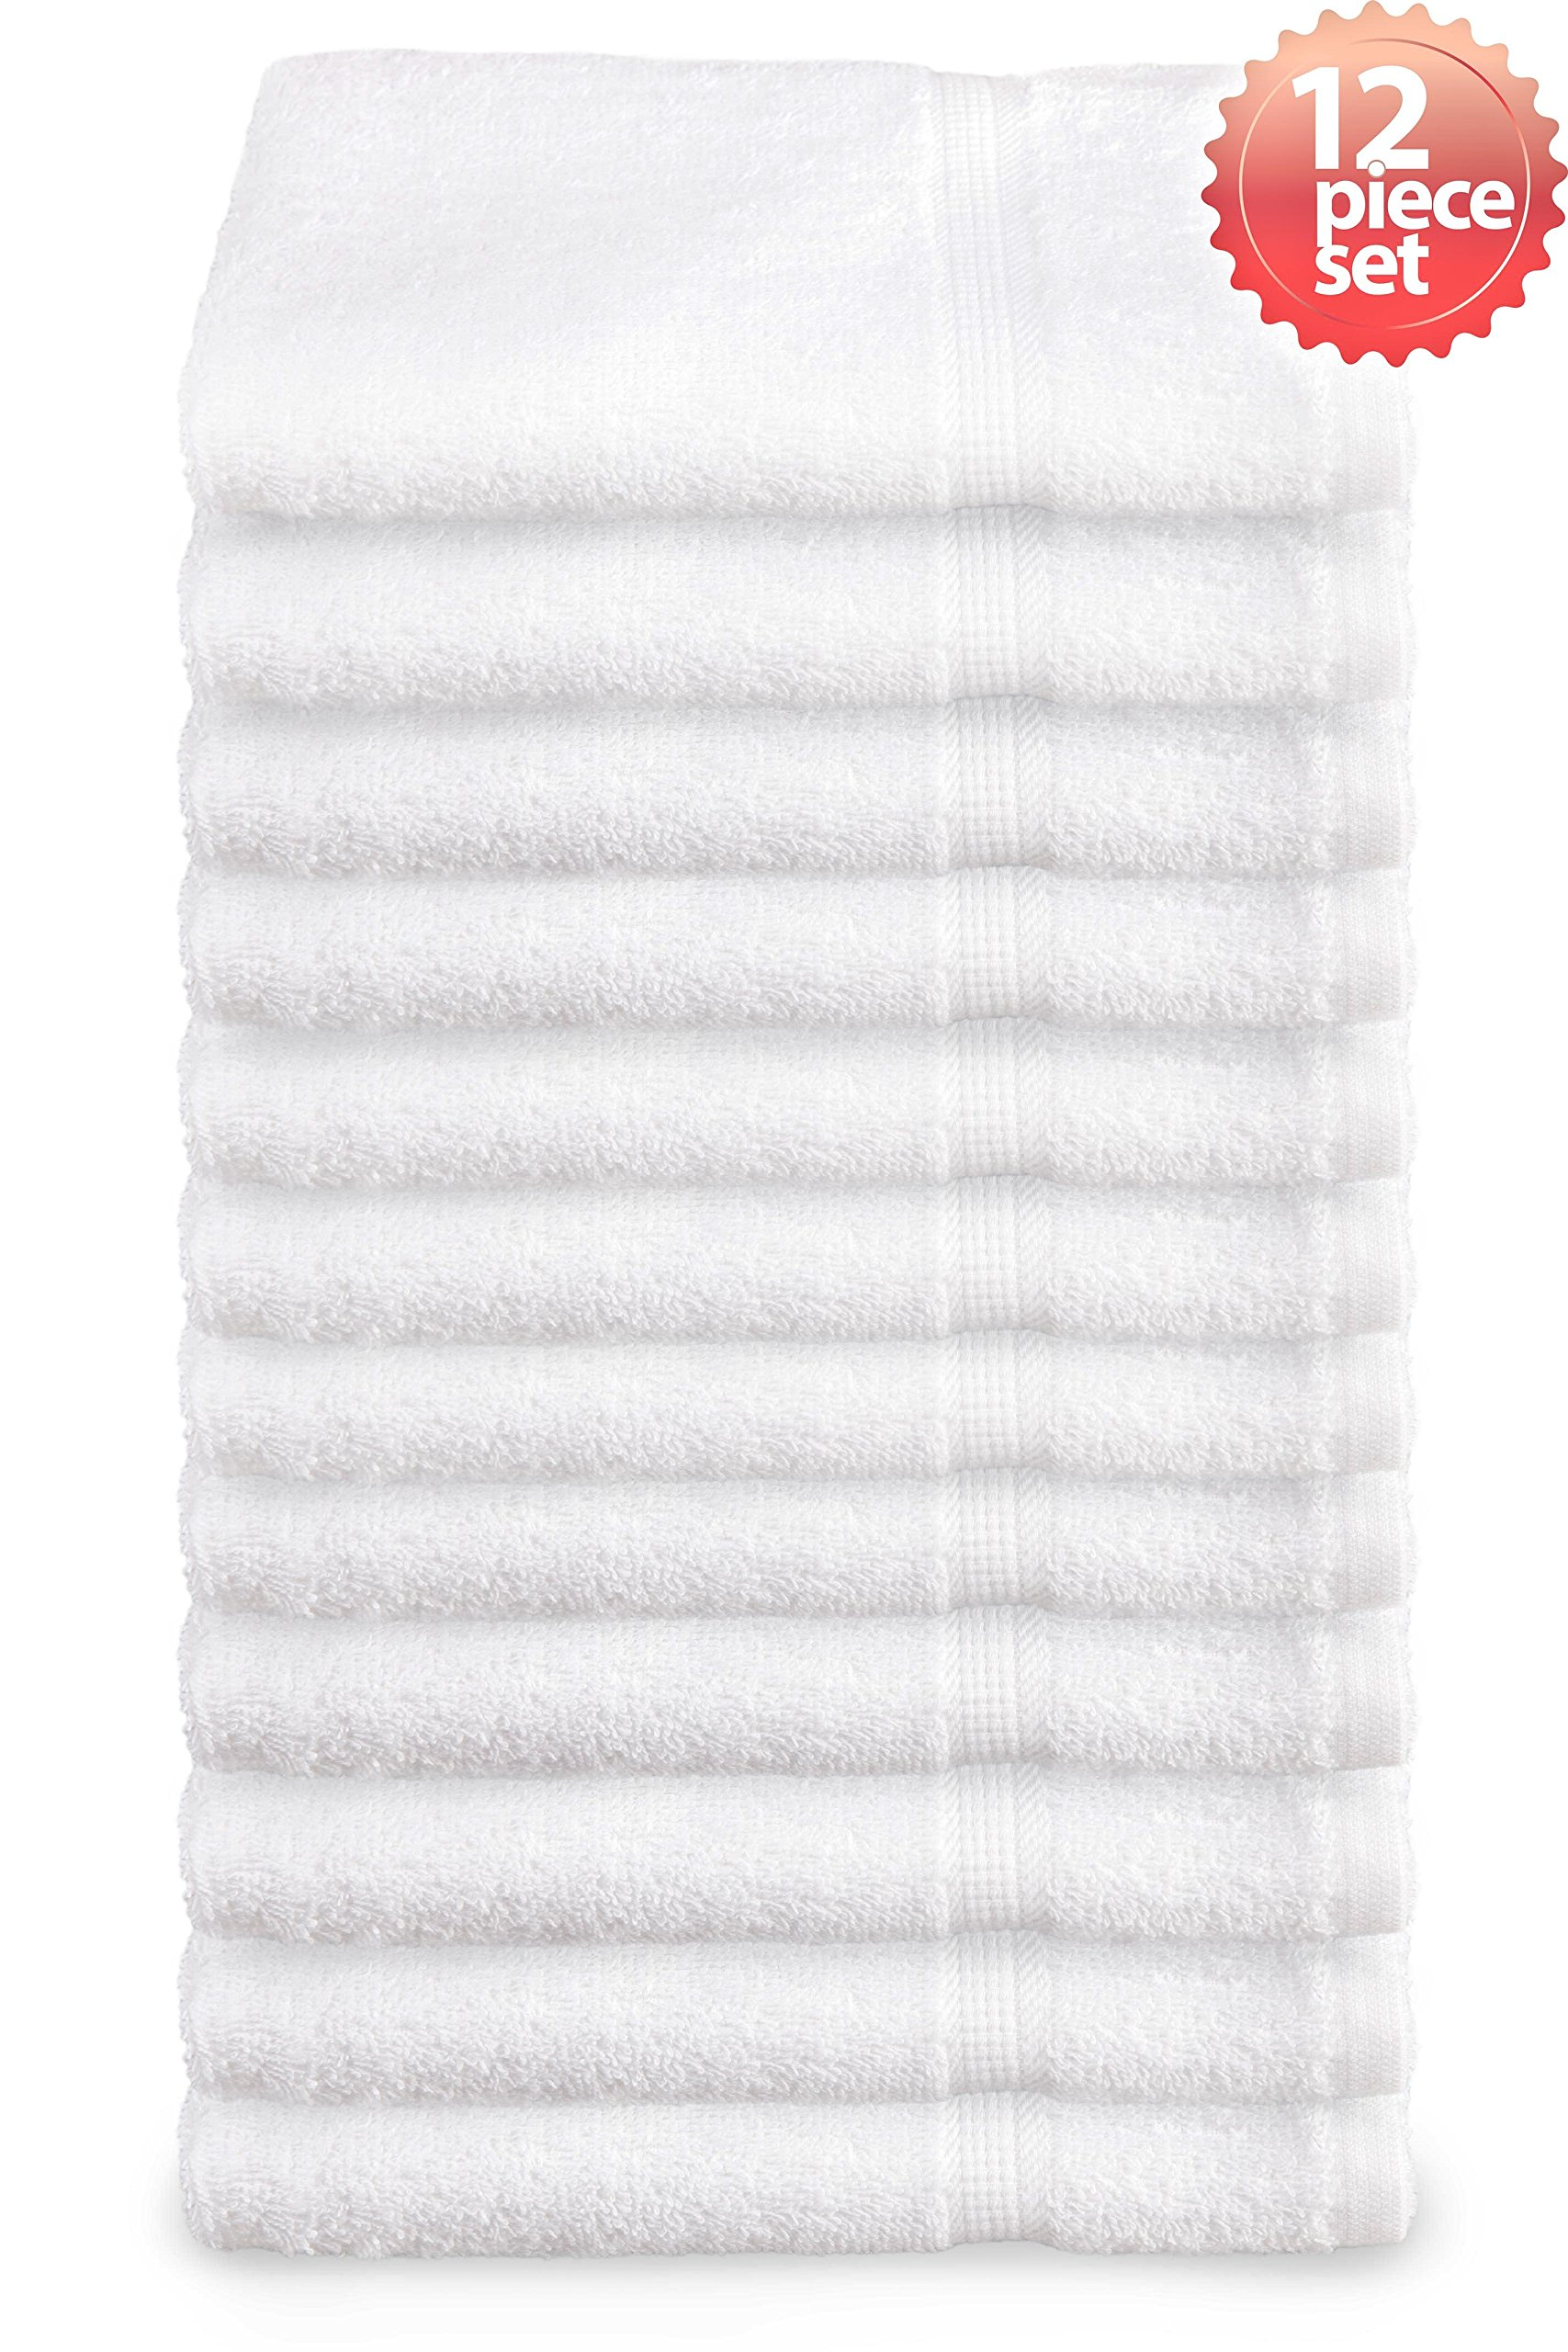 """Everydayspecial Super Absorbent and Soft Spa White Wash Towel with Dobby Border Design 13""""x13"""" (57-grams each) 12 piece"""